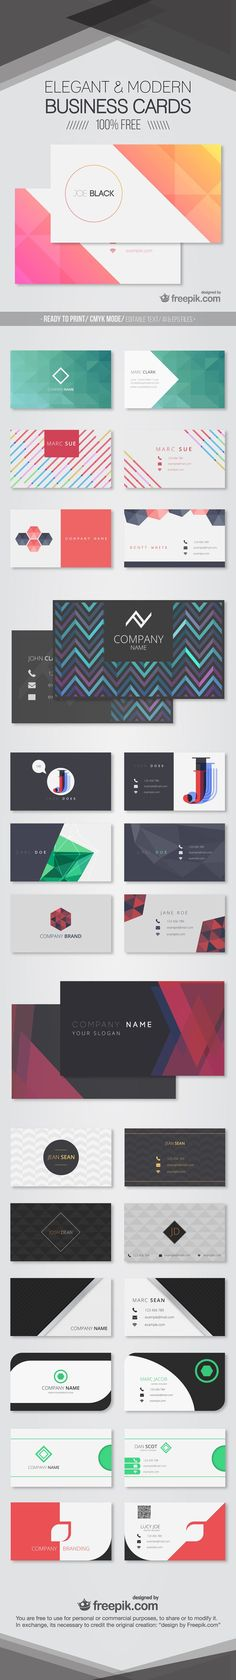 6 Useful Tips on Business Card Marketing - Start a Handyman Business Web Design, Name Card Design, Design Cars, Modern Business Cards, Professional Business Cards, Creative Business, Corporate Design, Business Card Design, Design Brochure